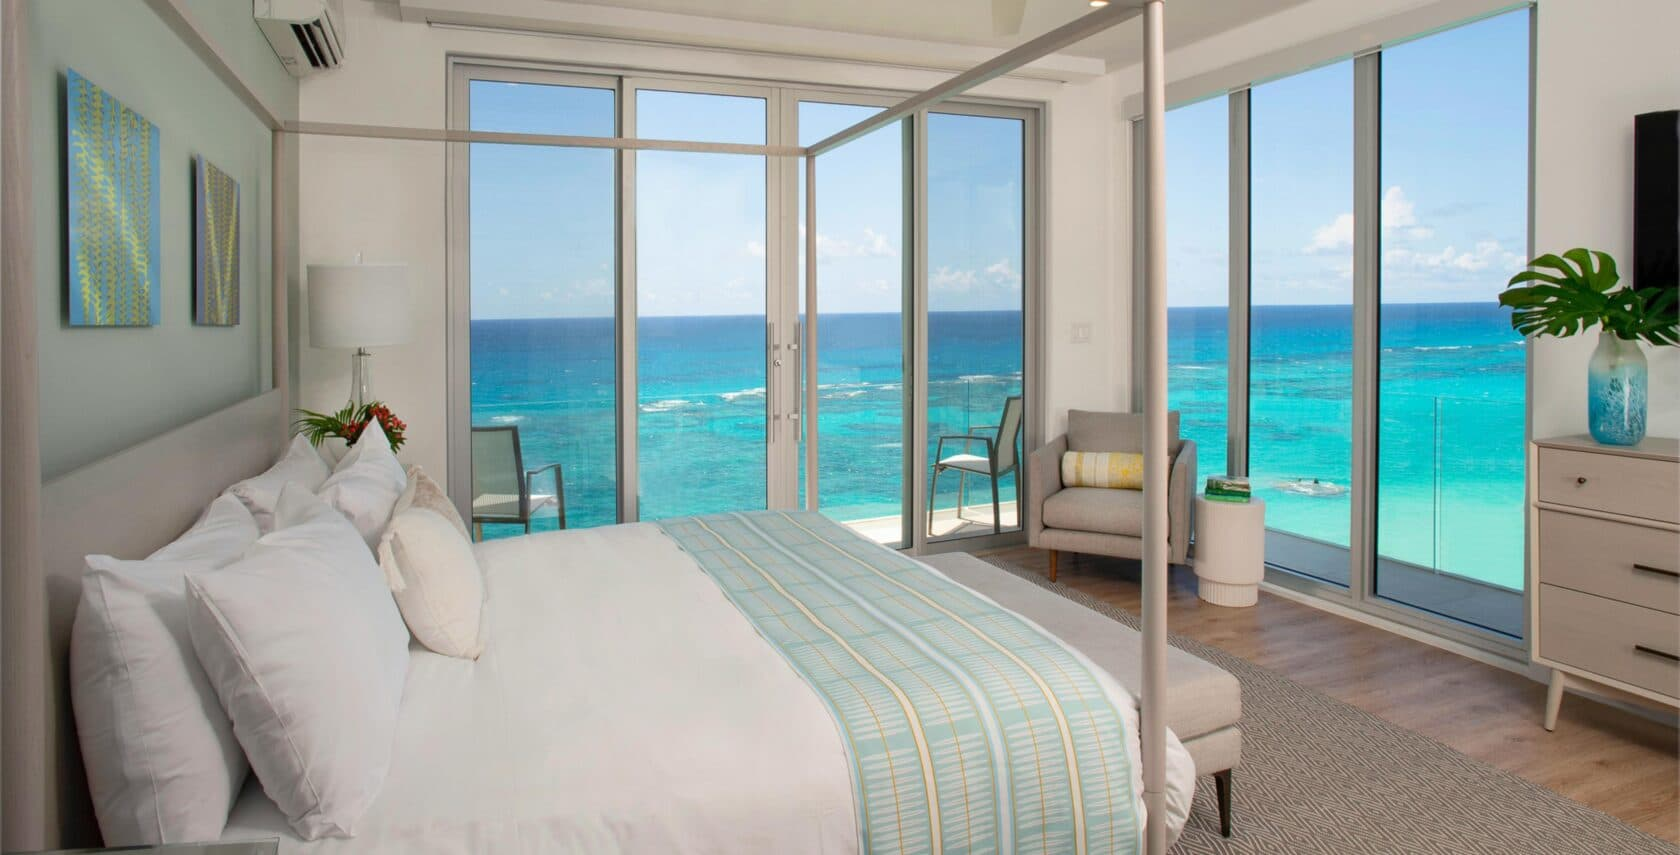 A bedroom with a canopy bed and large glass doors with an ocean view.